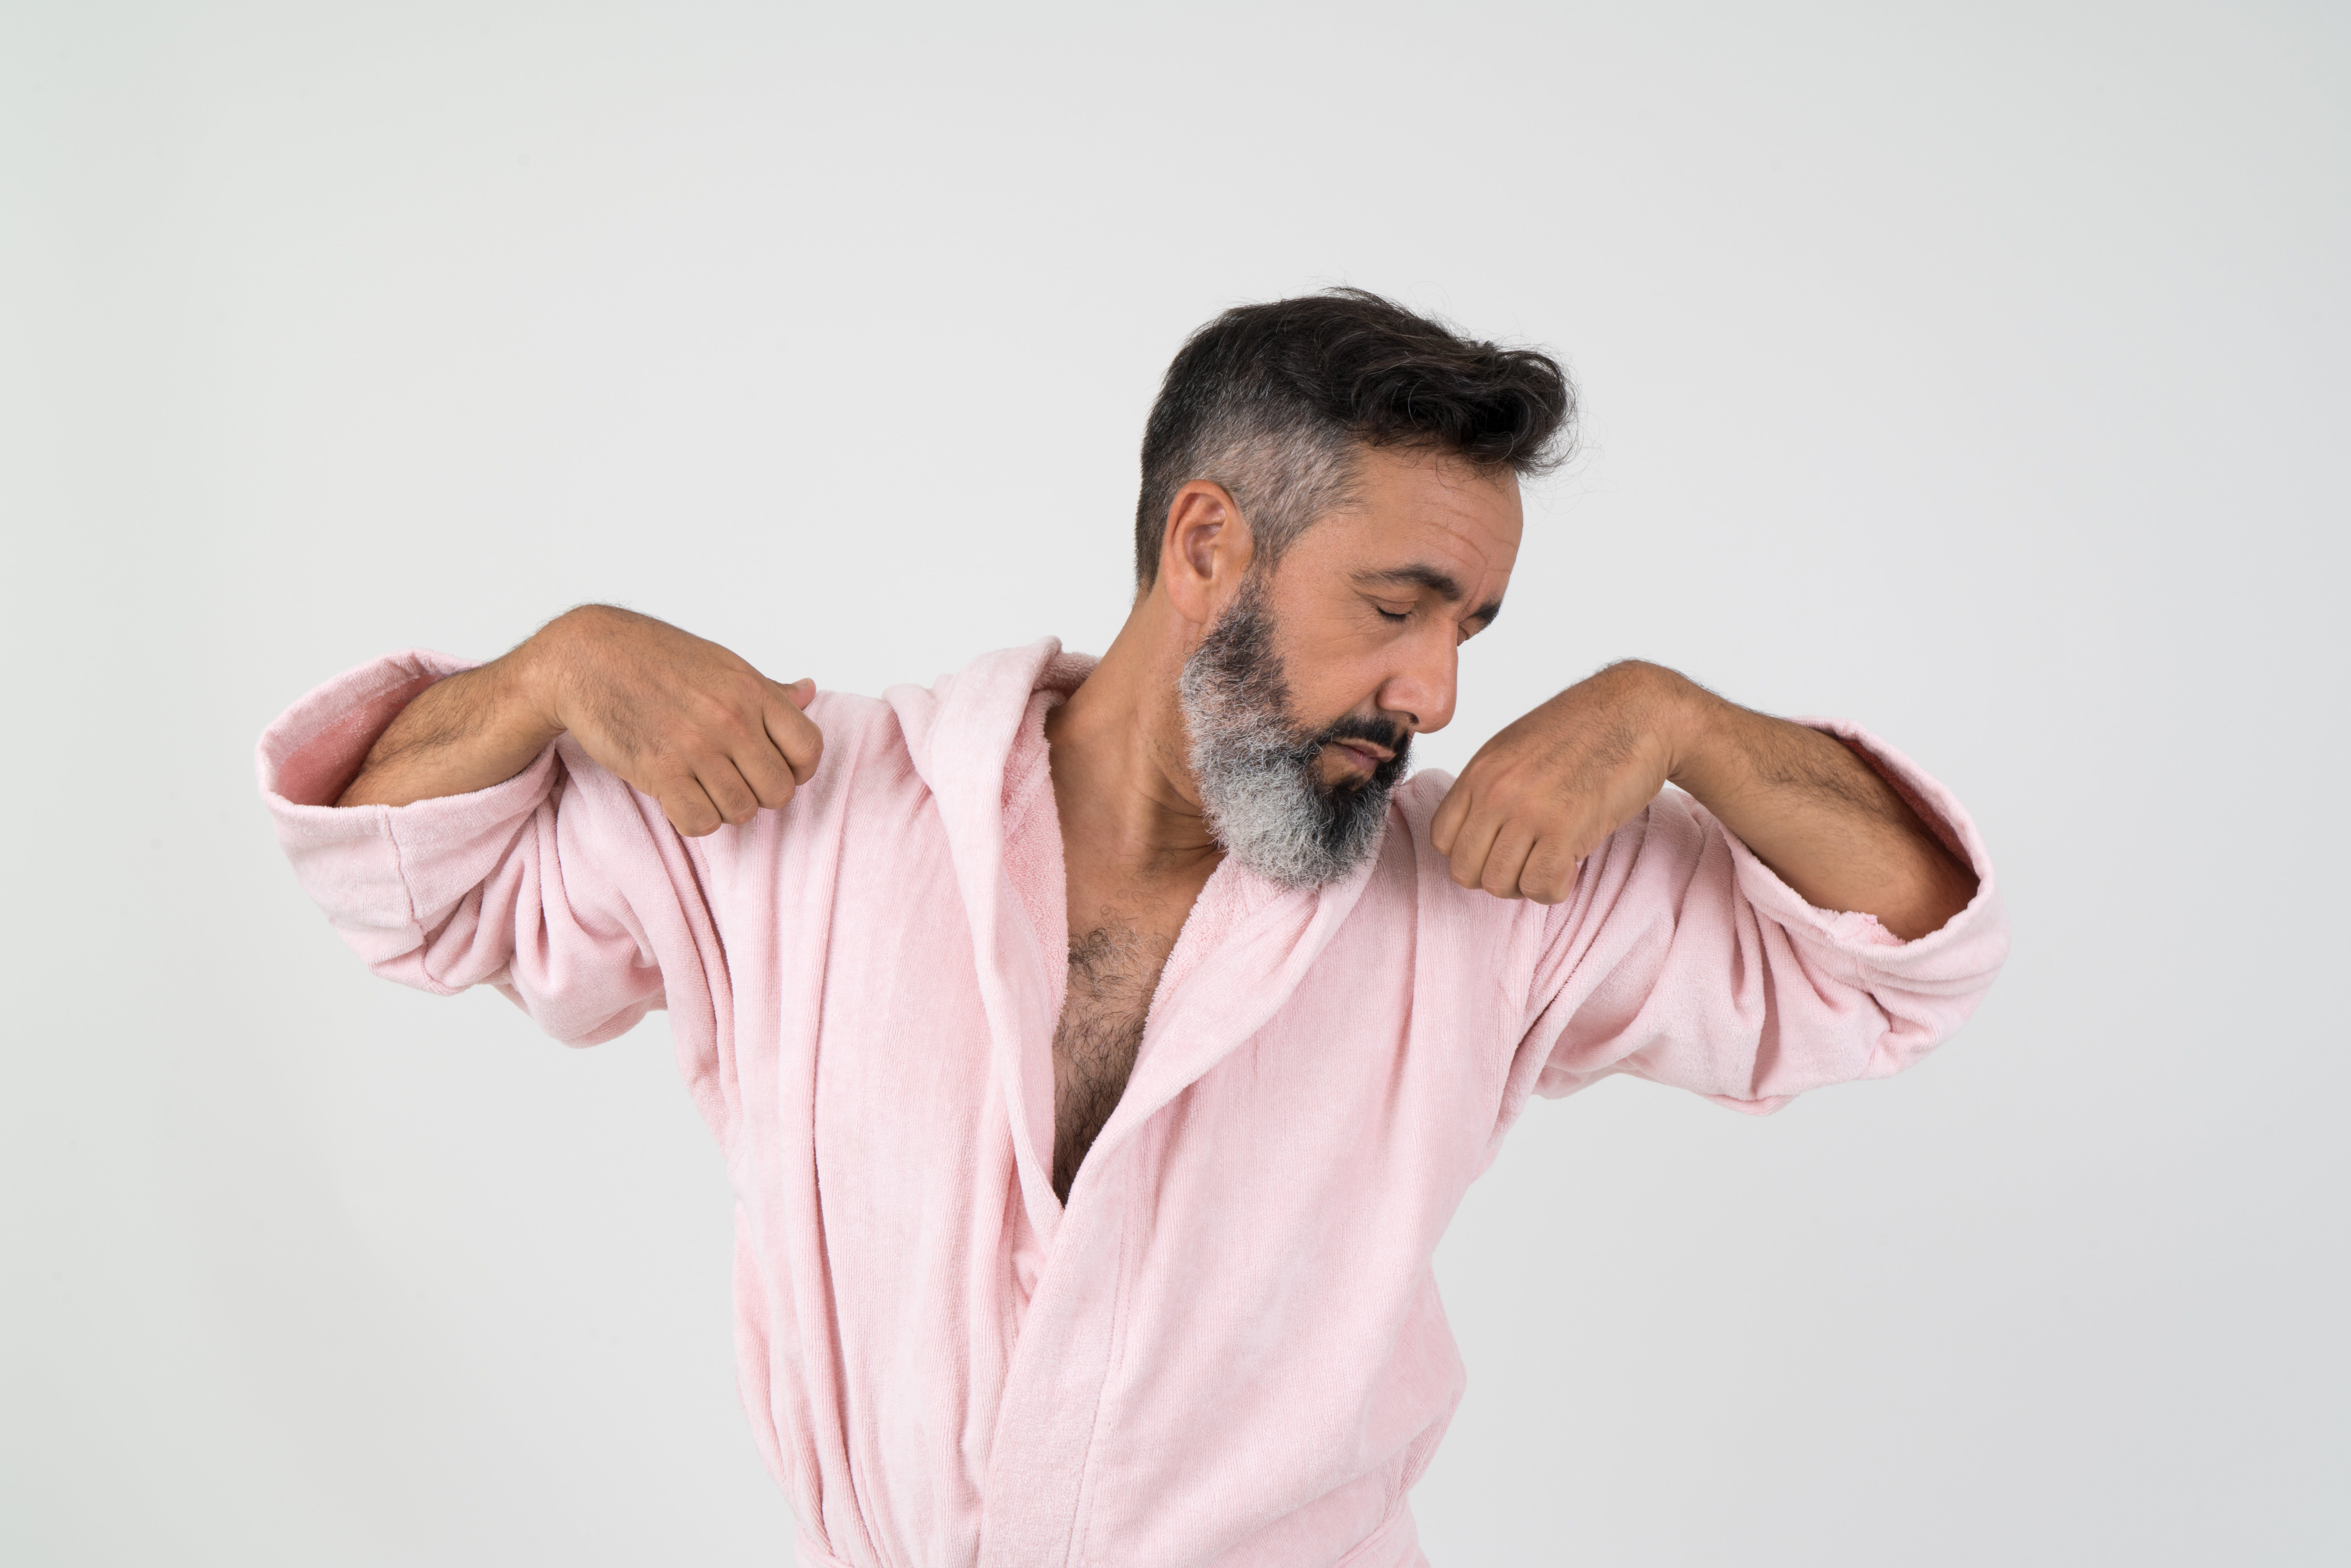 Man Wearing Pink Bathrobe With Both Hands on Shoulder